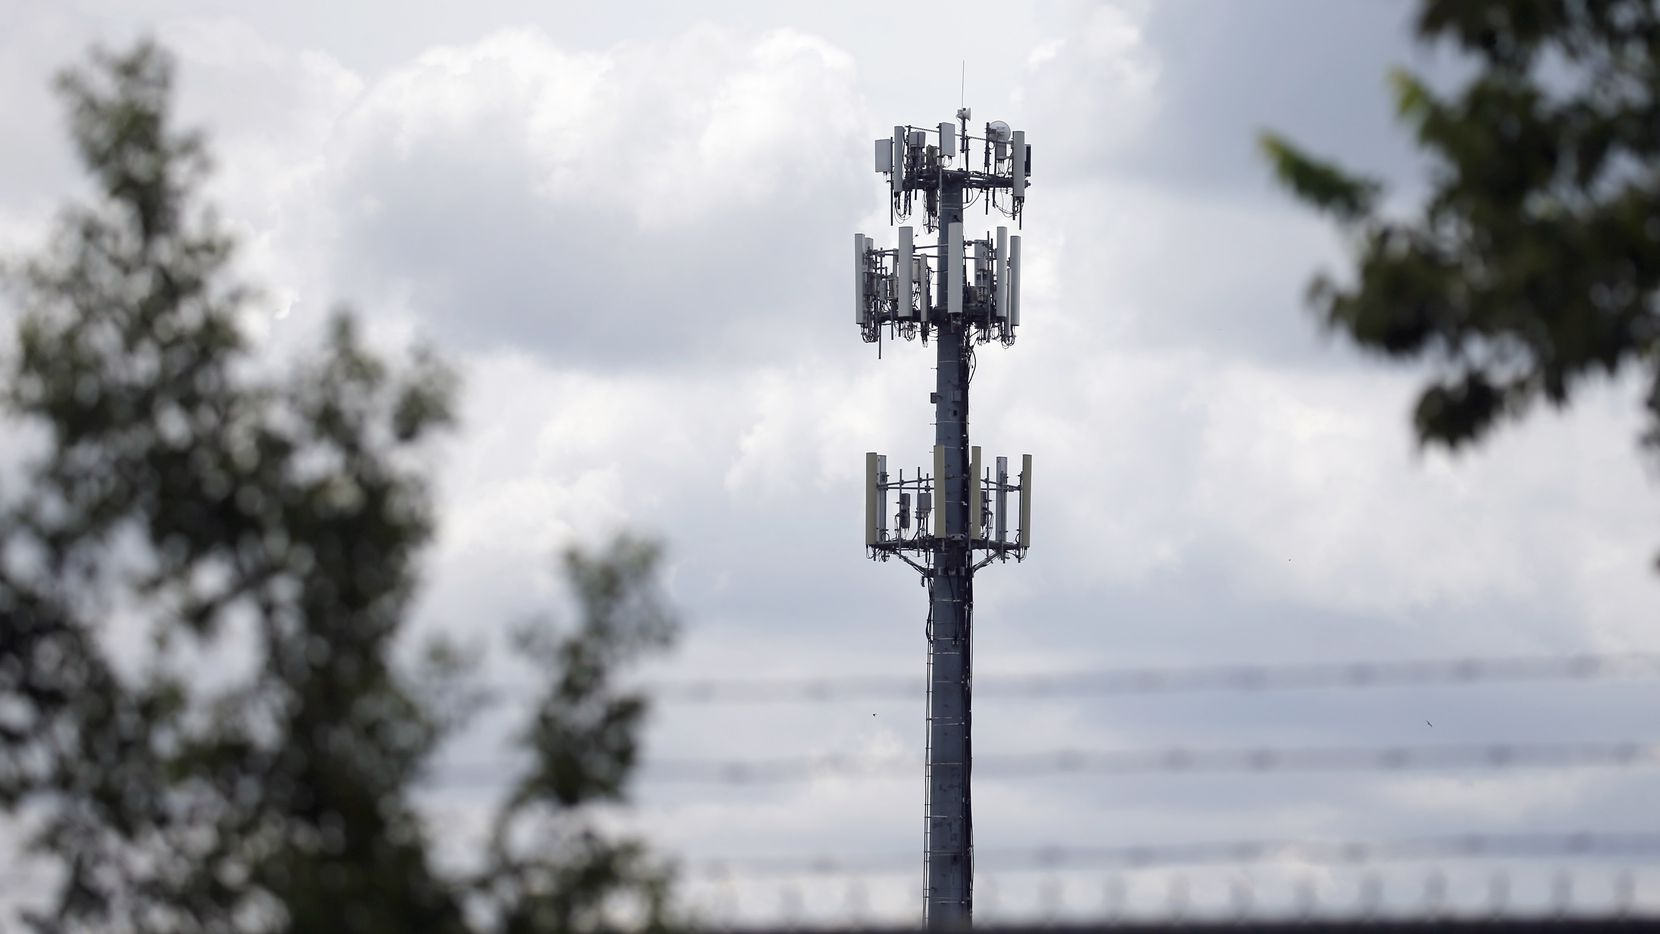 This cell tower on Bridge Street in Fort Worth on Tuesday was one of dozens of towers across Texas that suddenly went off line, from Fort Worth to Houston to Abilene.